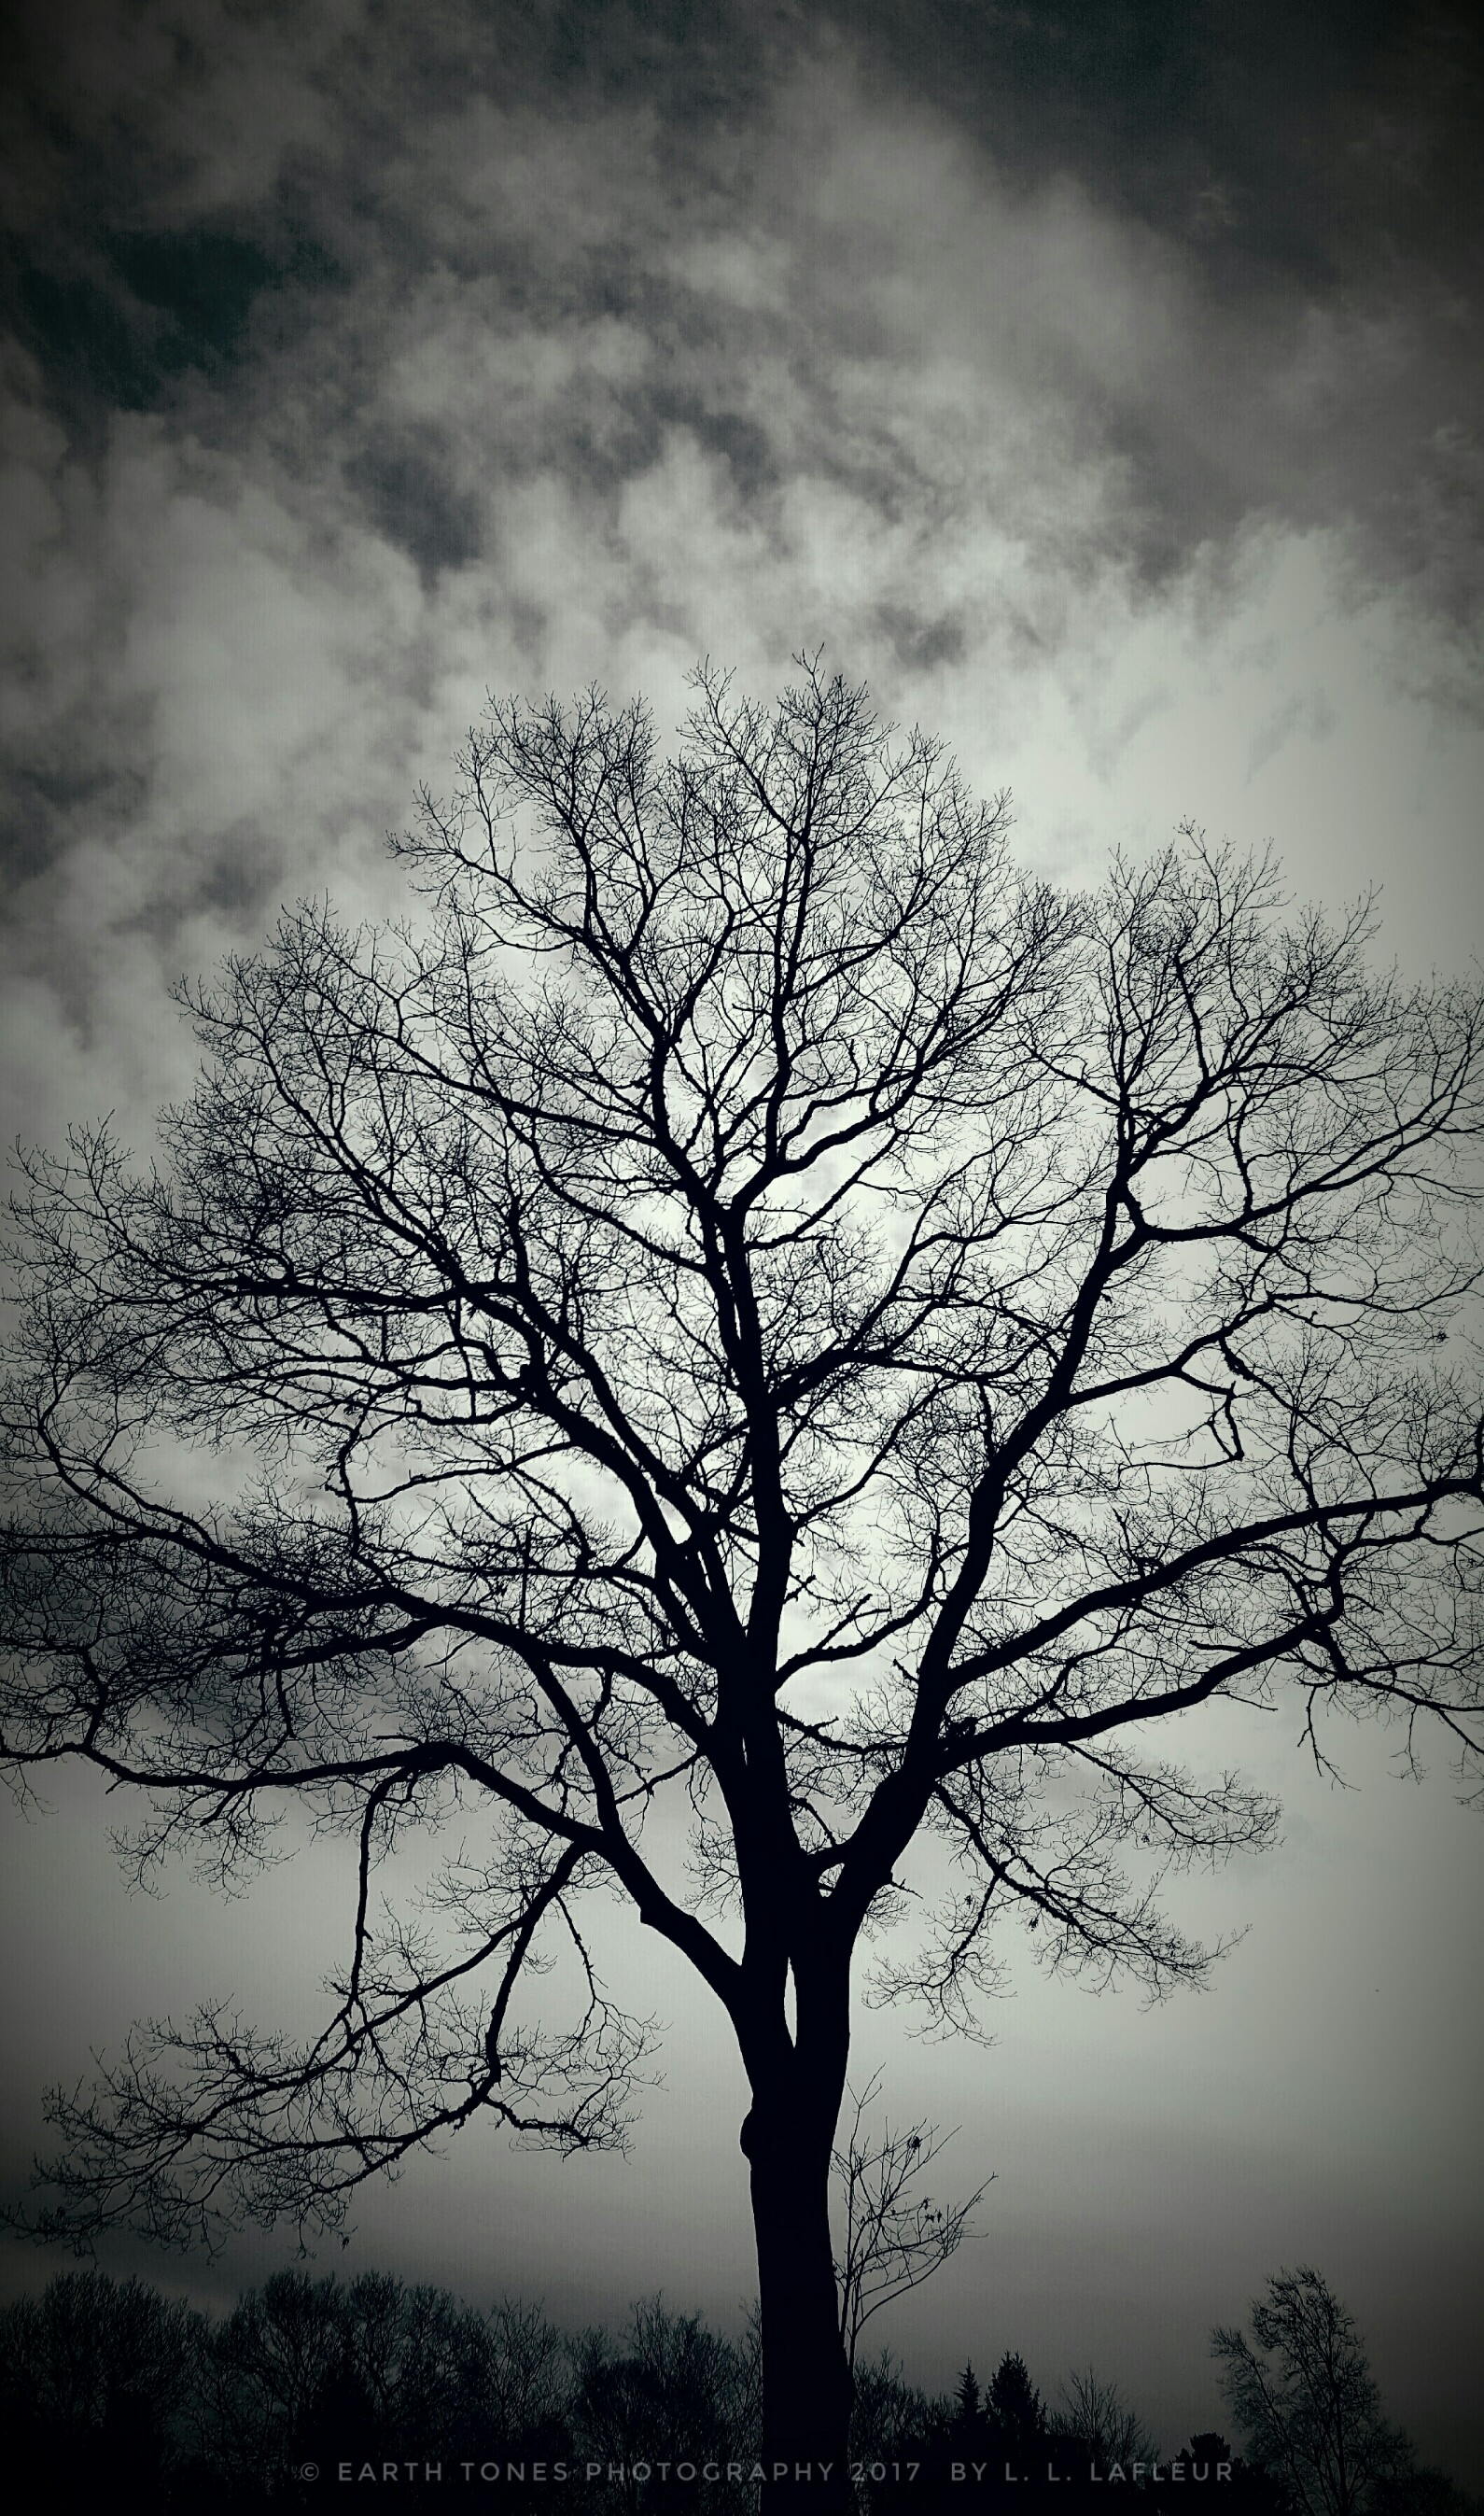 Tree silhouette photo art black white from earth tones photography